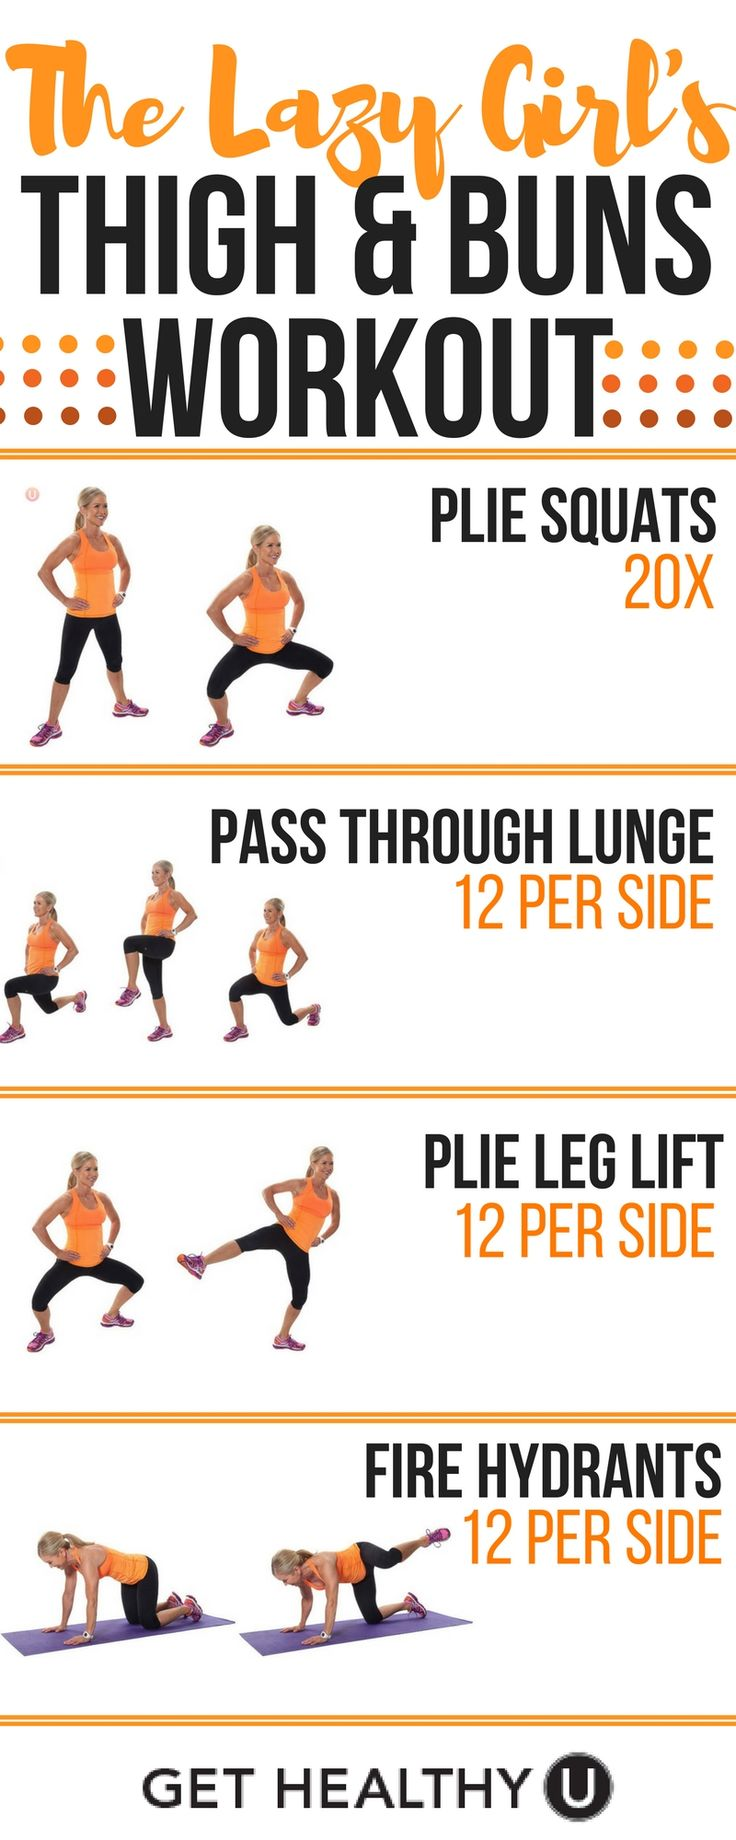 Try 4 rounds of this quick lower body booty and thigh workout in addition to your cardio to lift and firm that toosh! Check out our FREE exercise library for more exercises: http://gethealthyu.com/exercise/ #weightlosstips